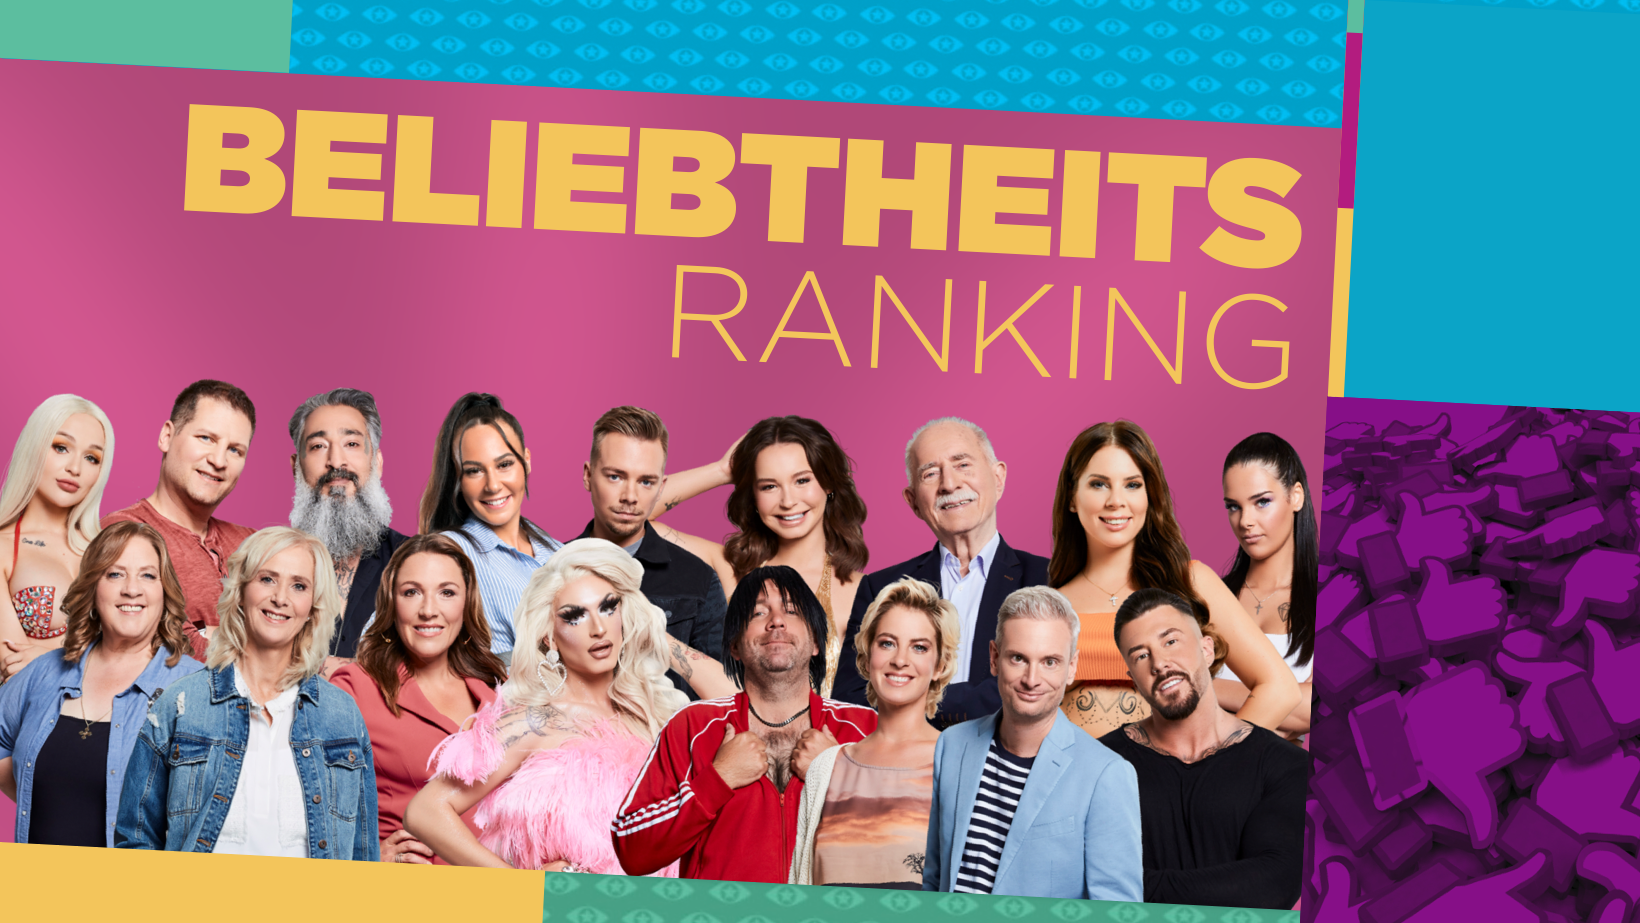 Promi Big Brother 2020 Ranking